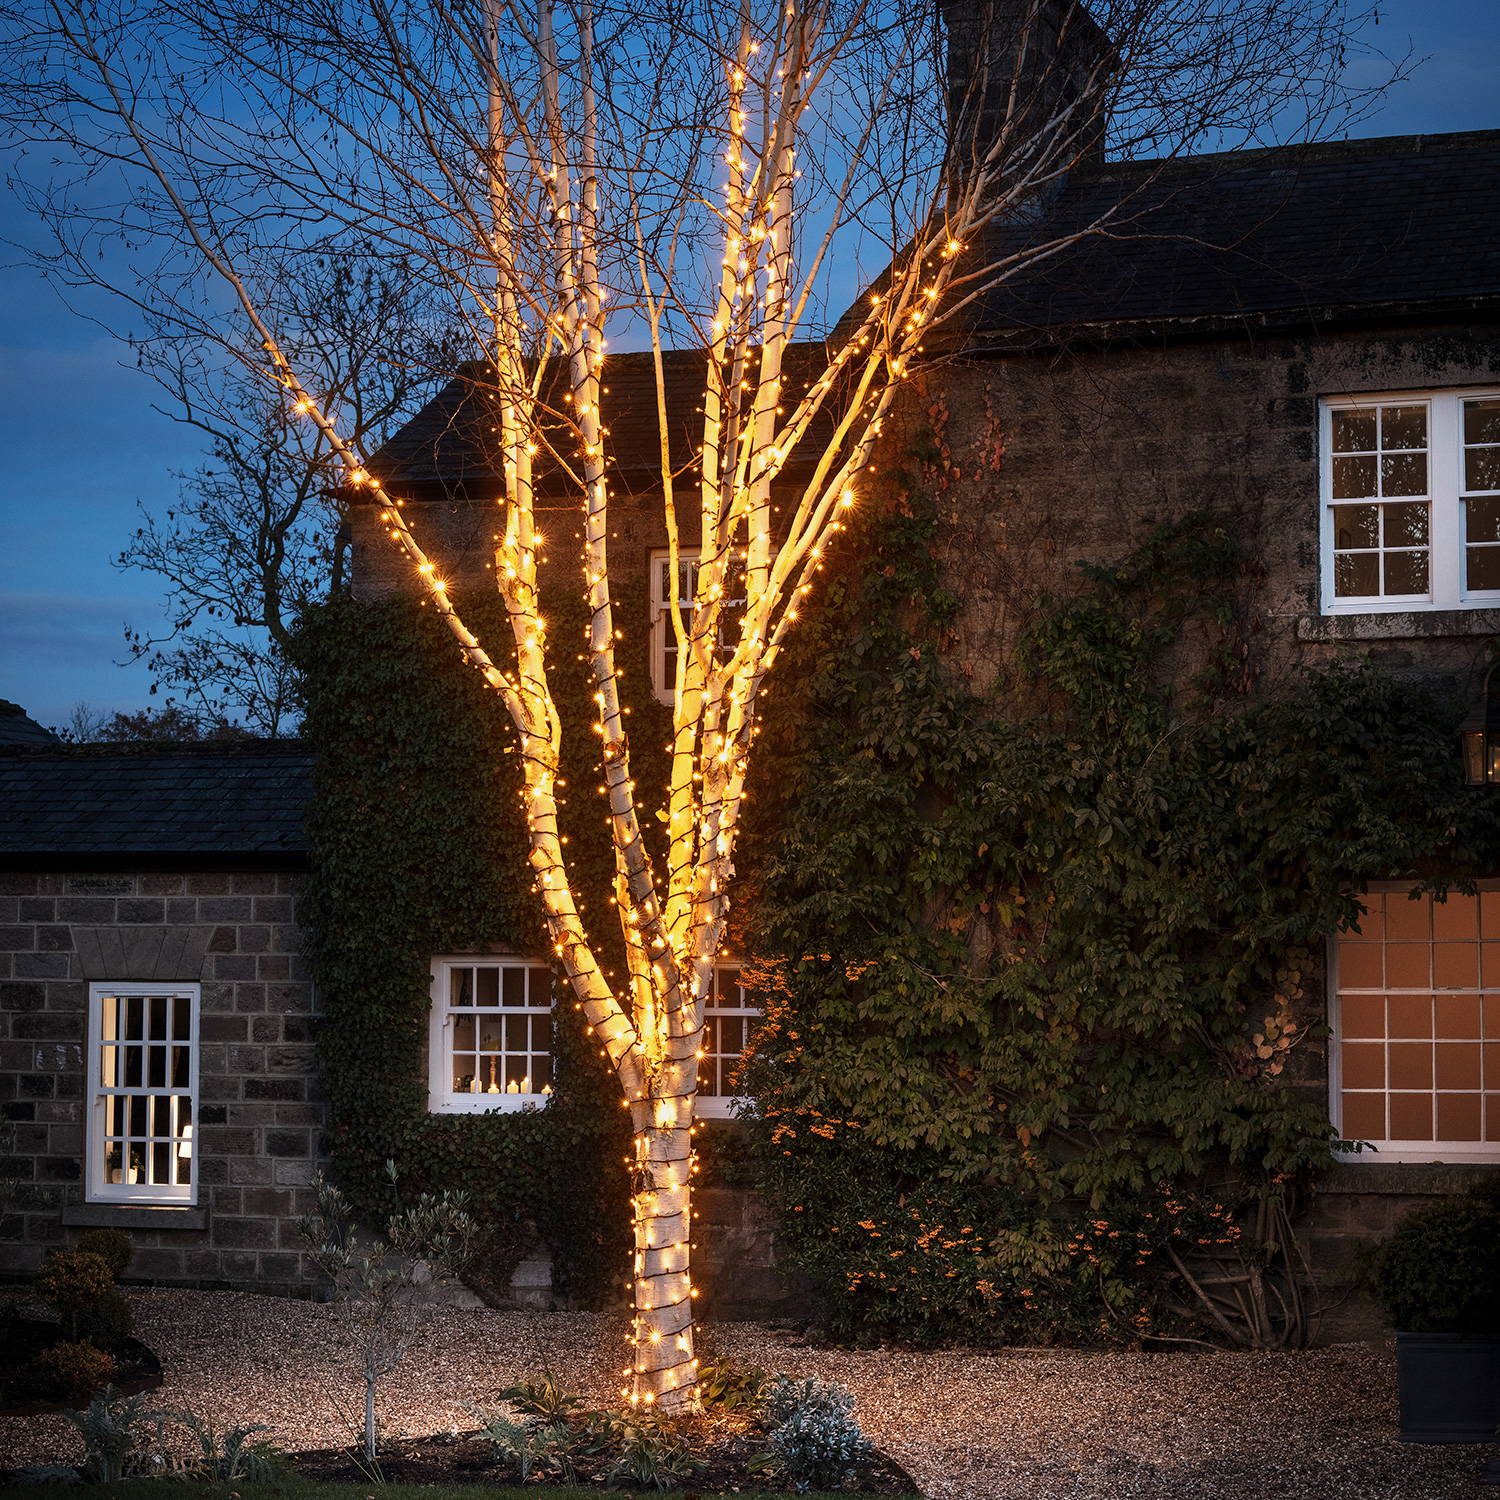 A large tree wrapped in warm white string lights in front of a stone house